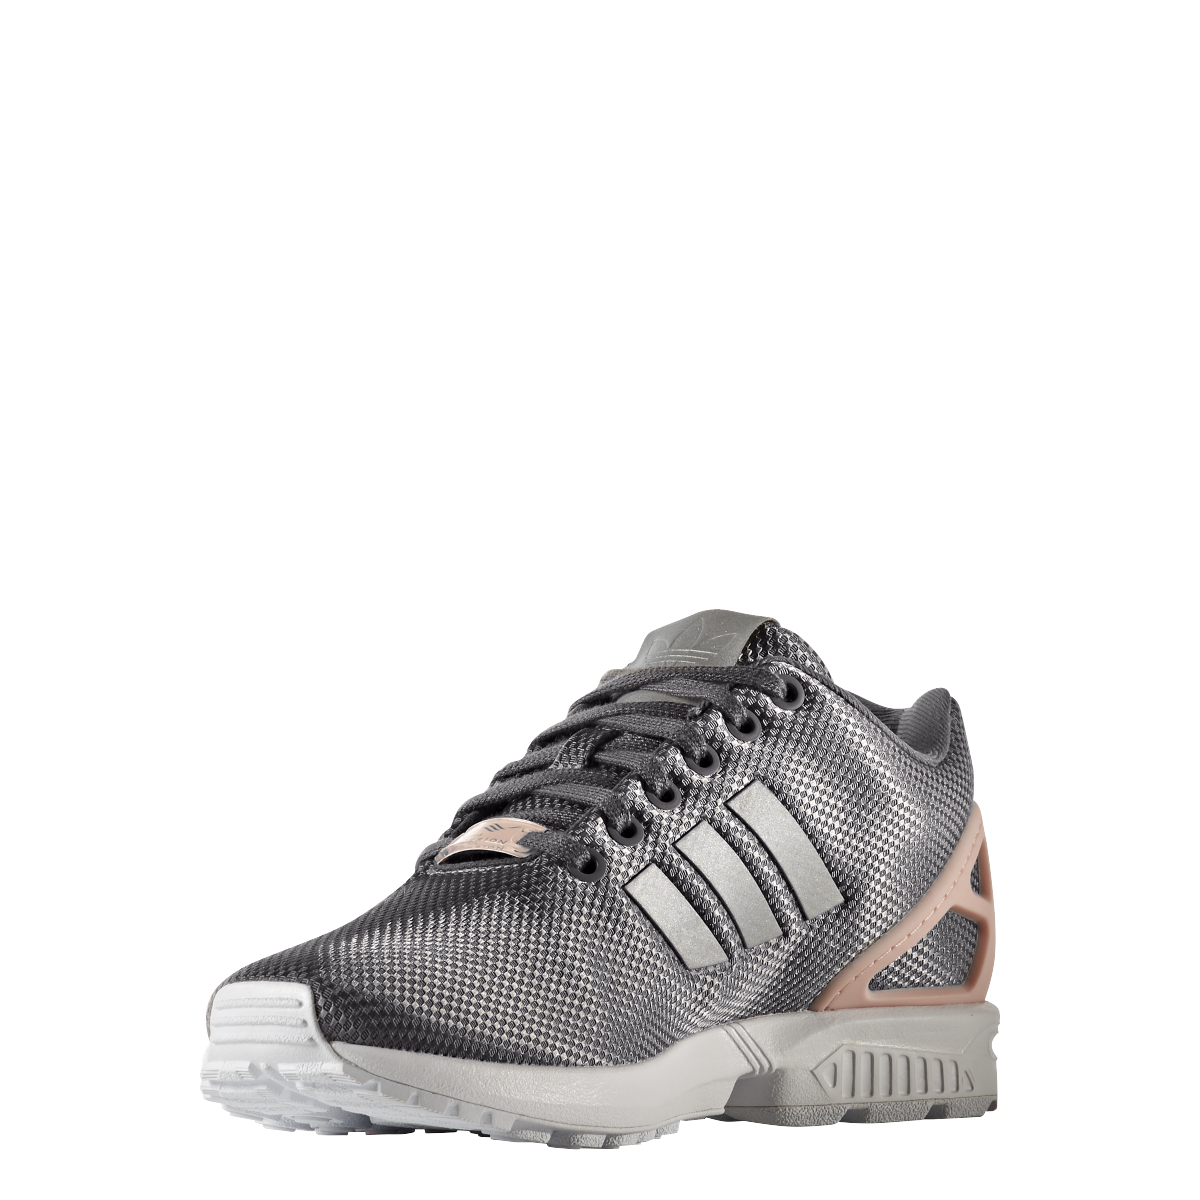 adidas originals zx flux damen grau